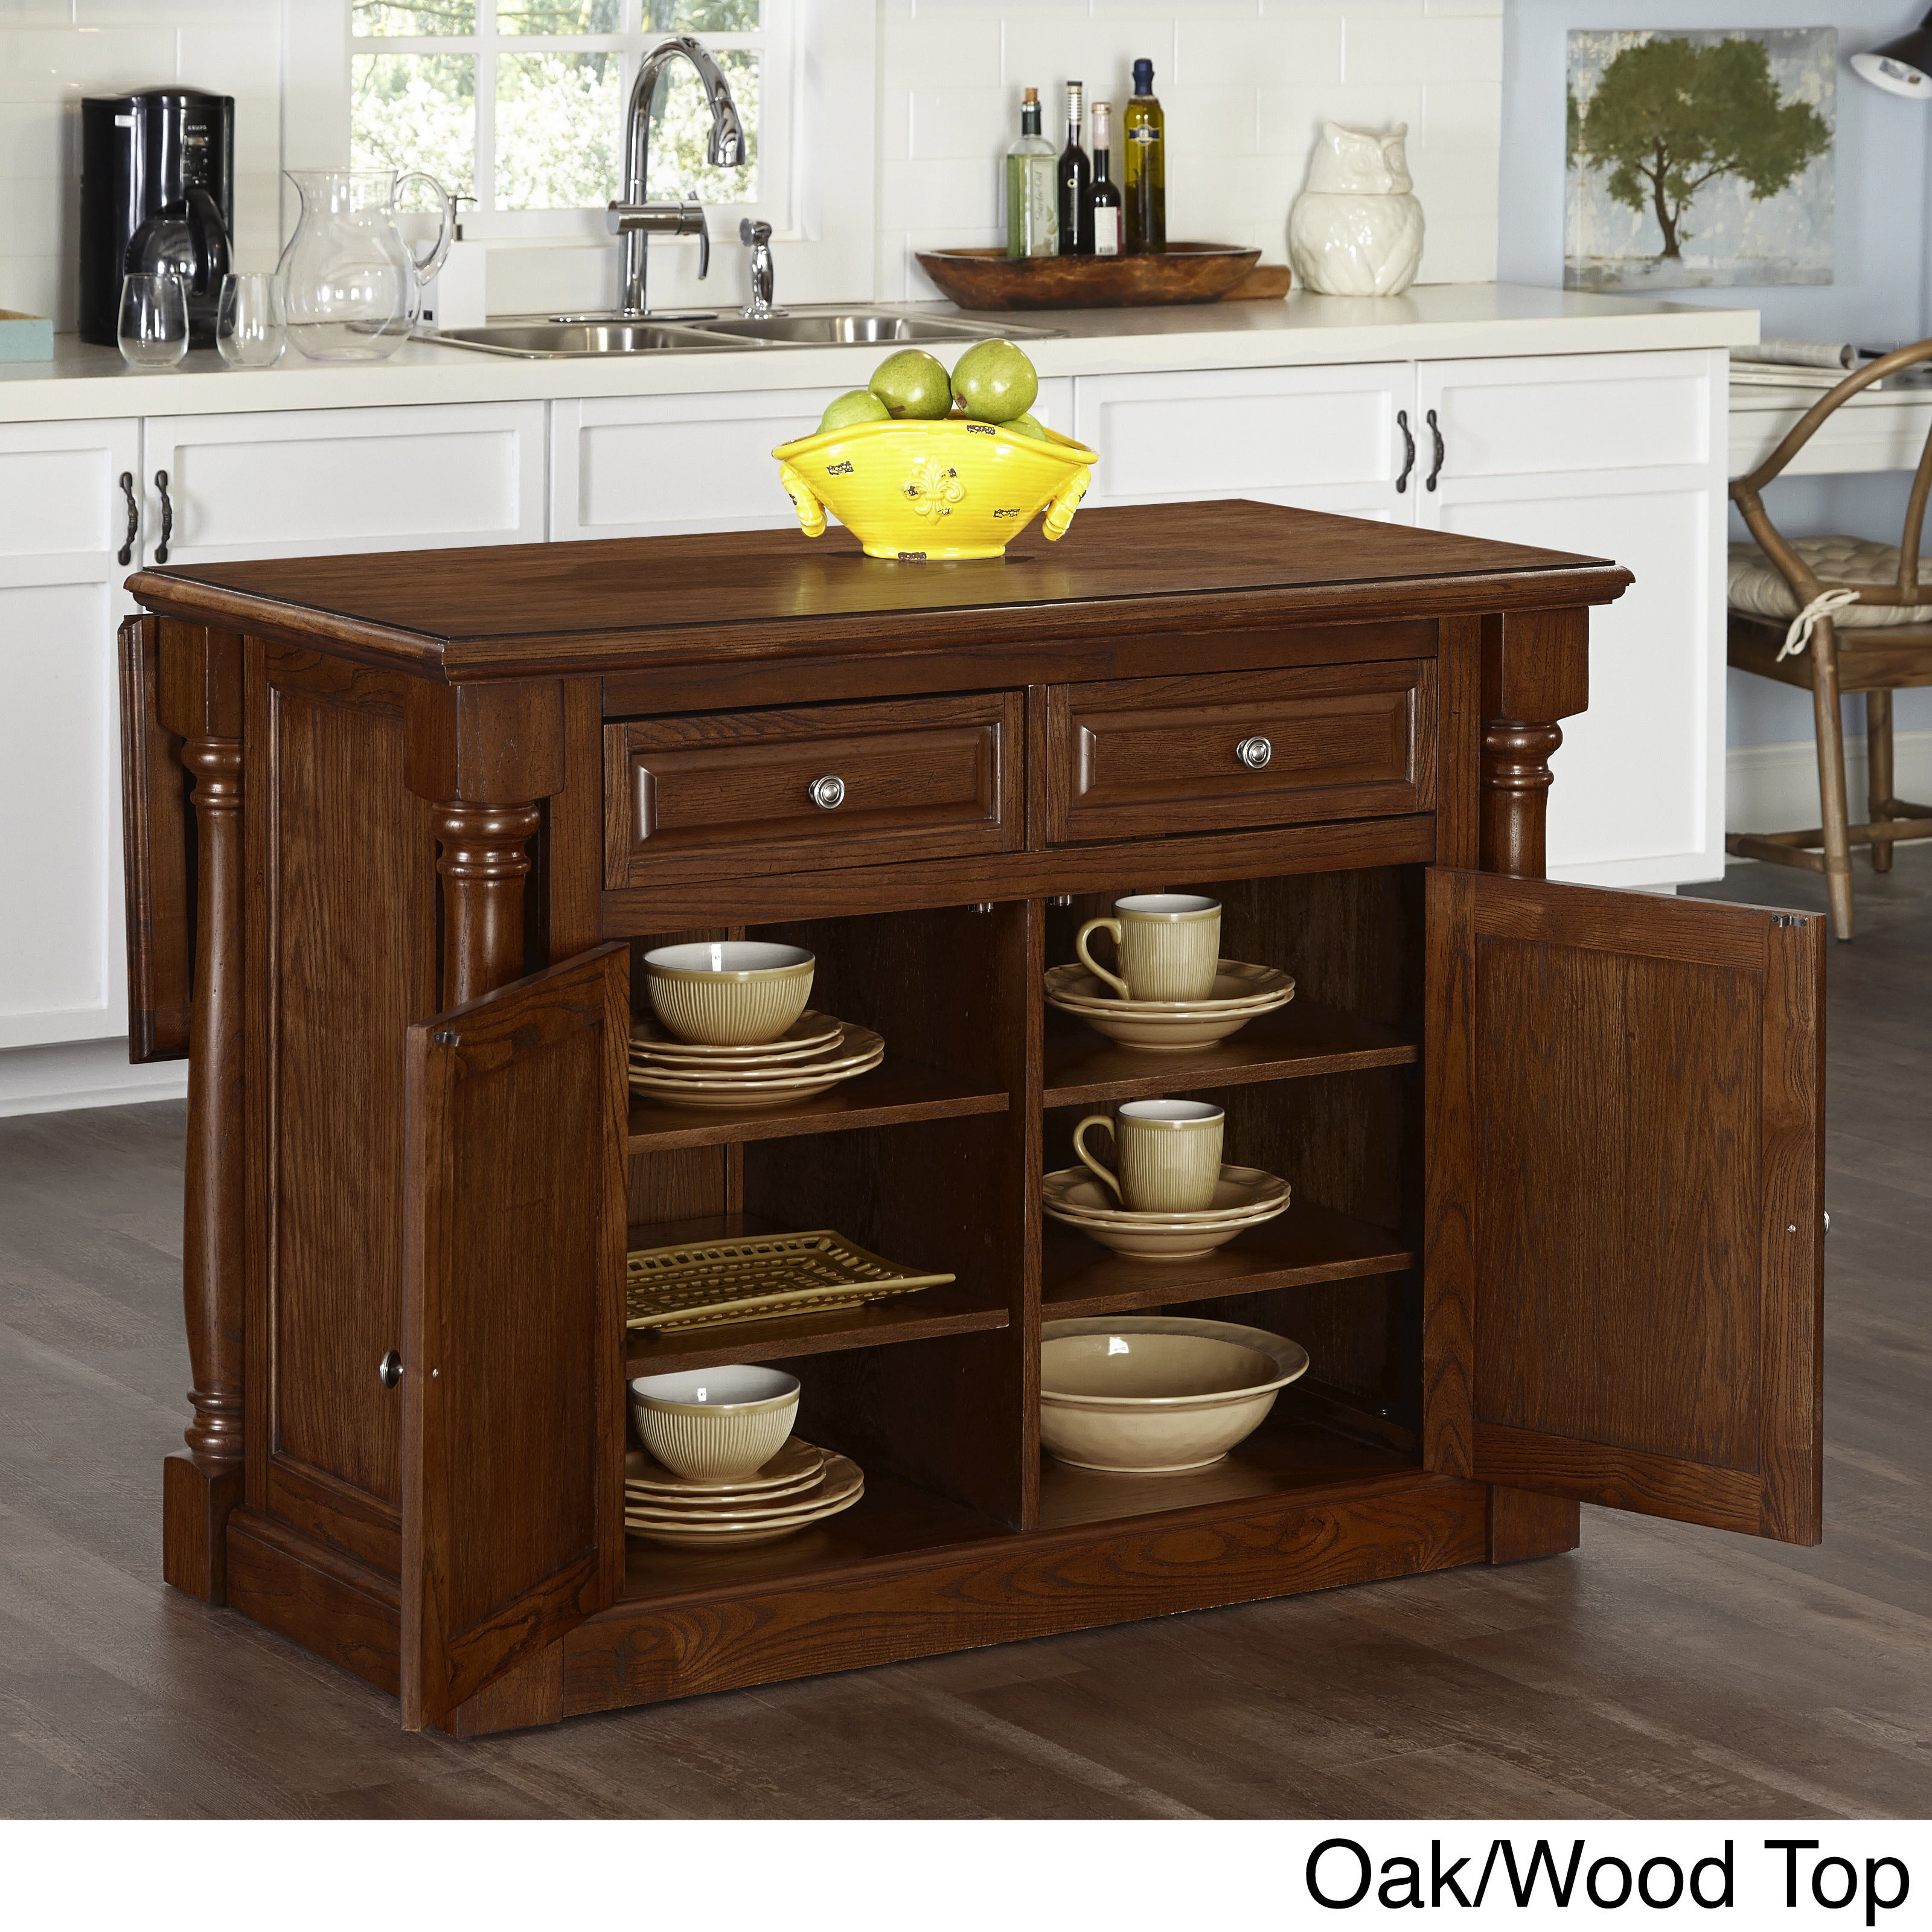 Monarch Kitchen Island and Two Stools by Home Styles (Oak...